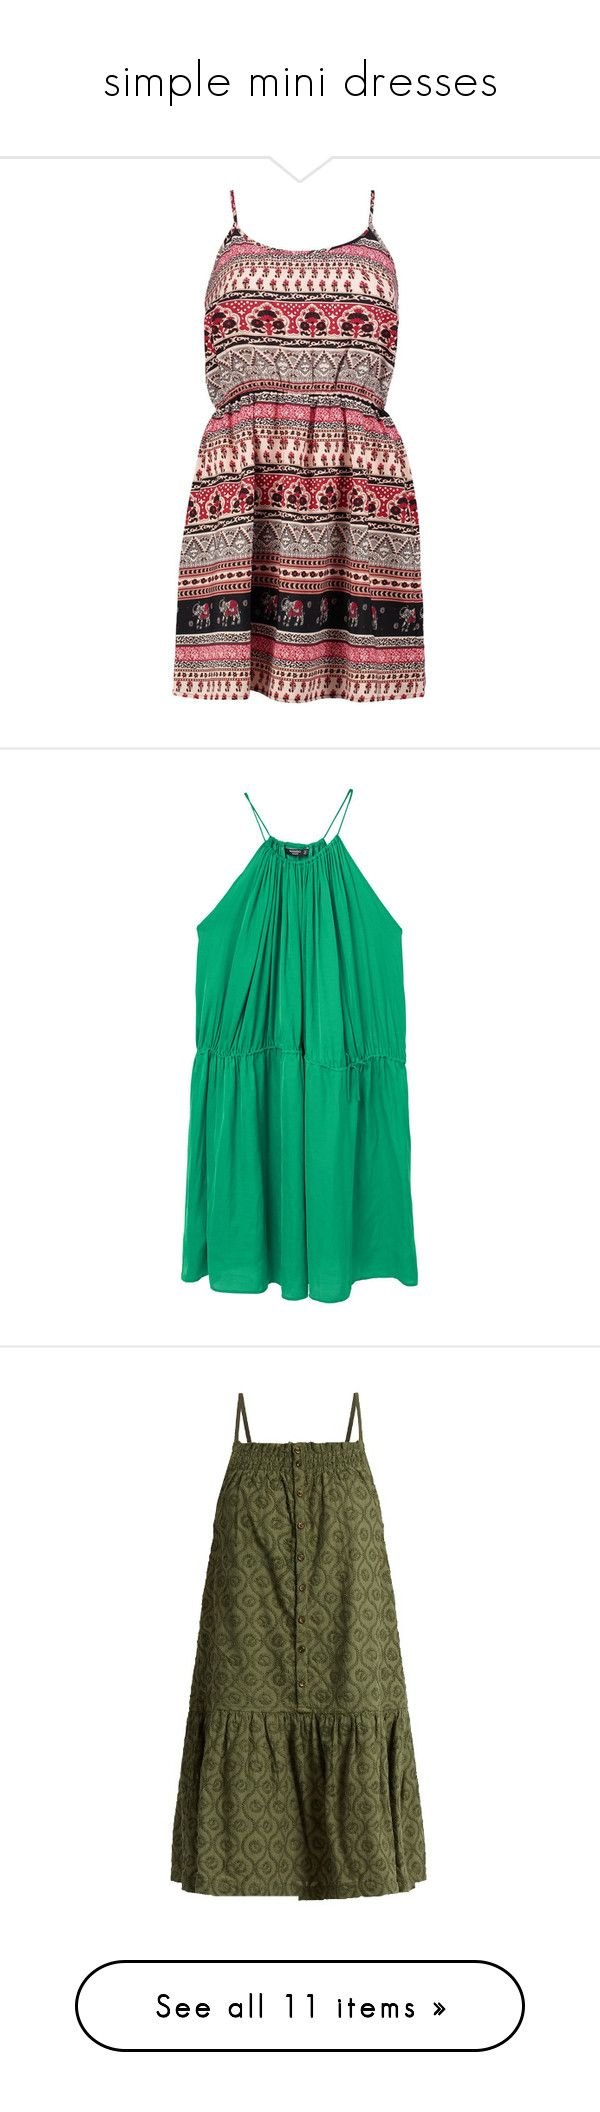 """""""simple mini dresses"""" by unicorntears01 ❤ liked on Polyvore featuring dresses, white skater dress, white cami, body con dress, bodycon mini dress, white dresses, green dress, halter neckline dress, halter dress and green halter dress"""